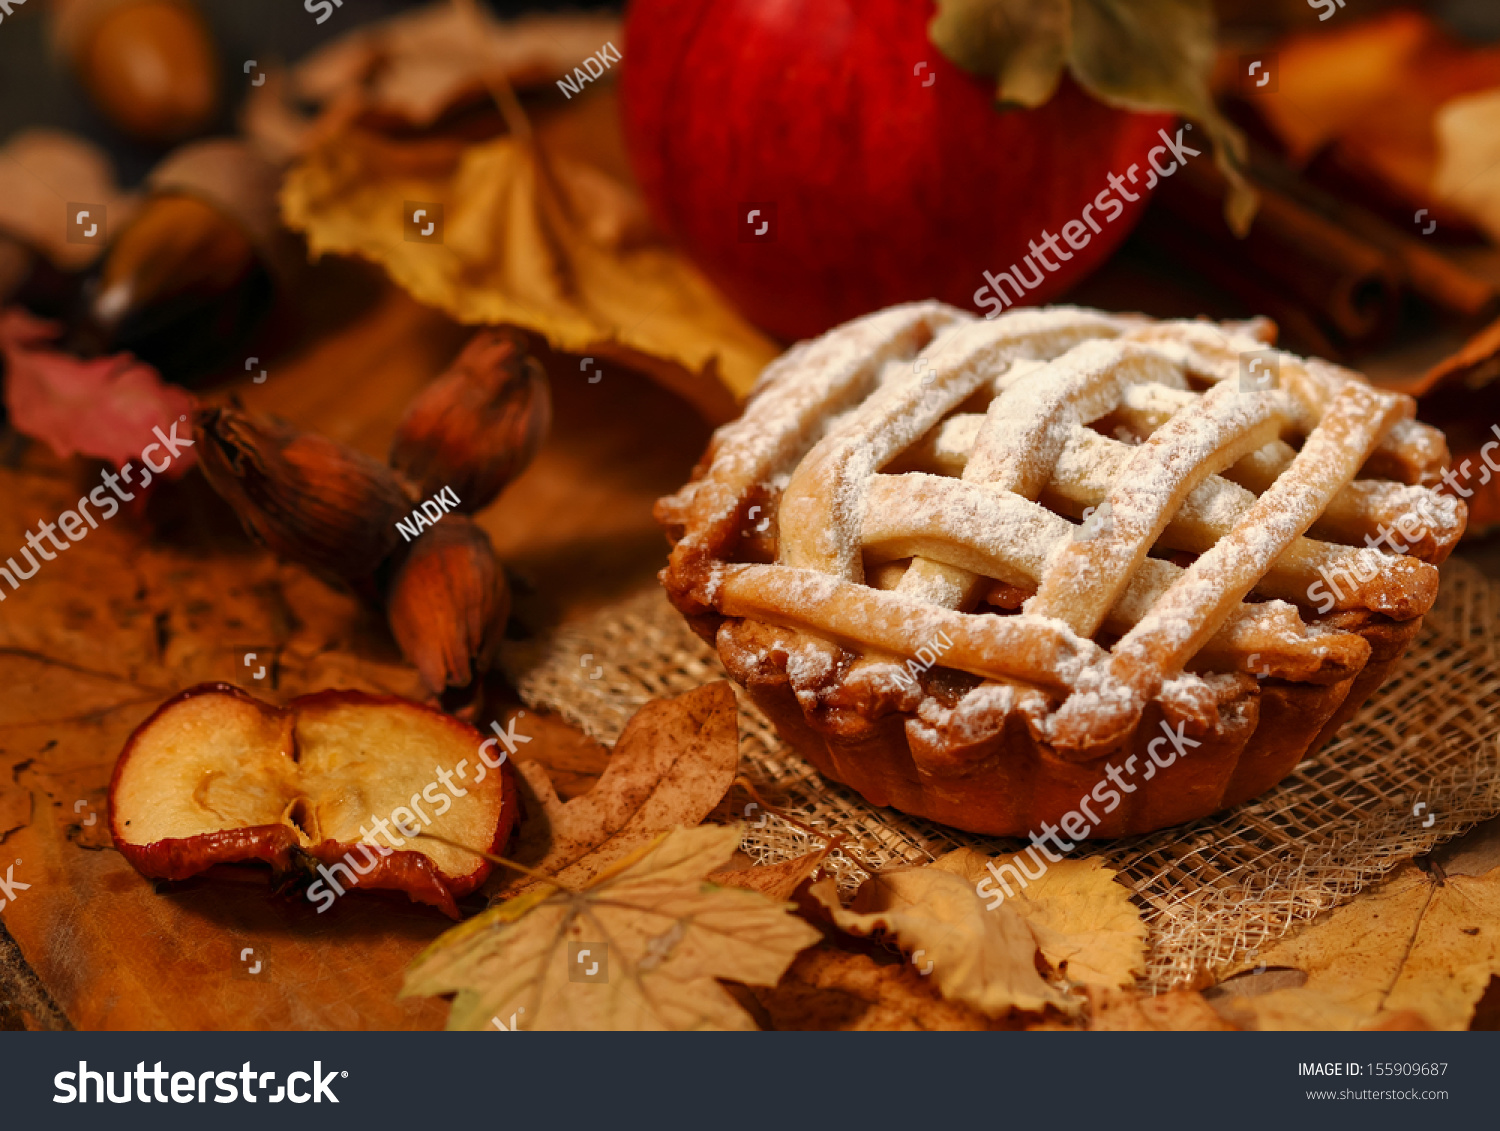 Arrangement of home-made apple pie in autumnal decor #155909687